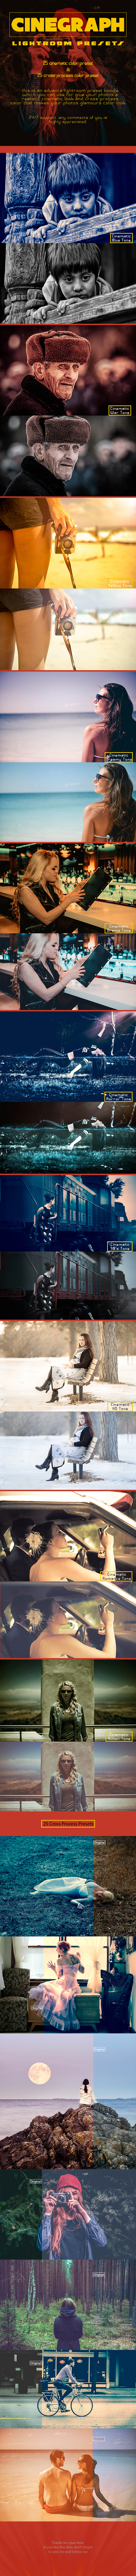 50 Cinegraph Presets Pack - Cinematic Lightroom Presets